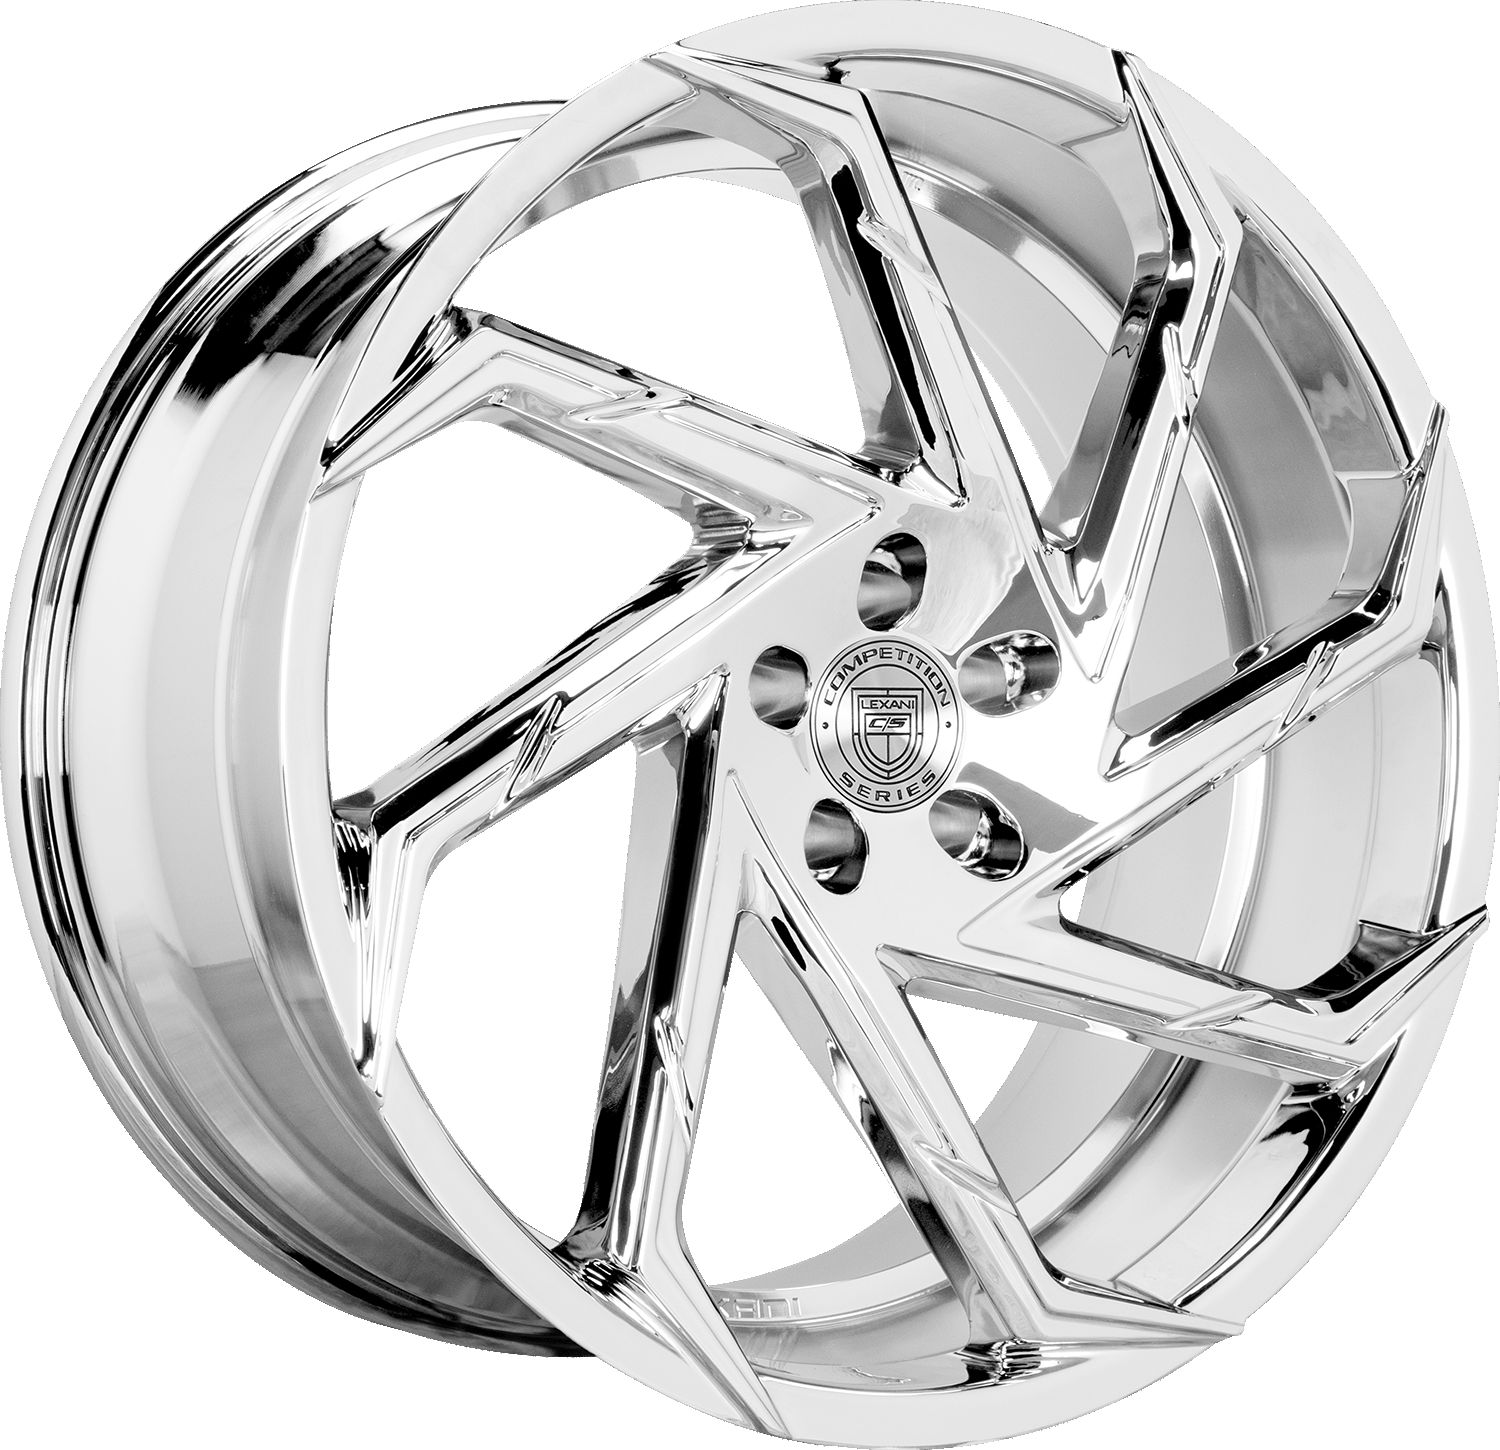 667 - CYCLONE  WHEELS AND RIMS PACKAGES